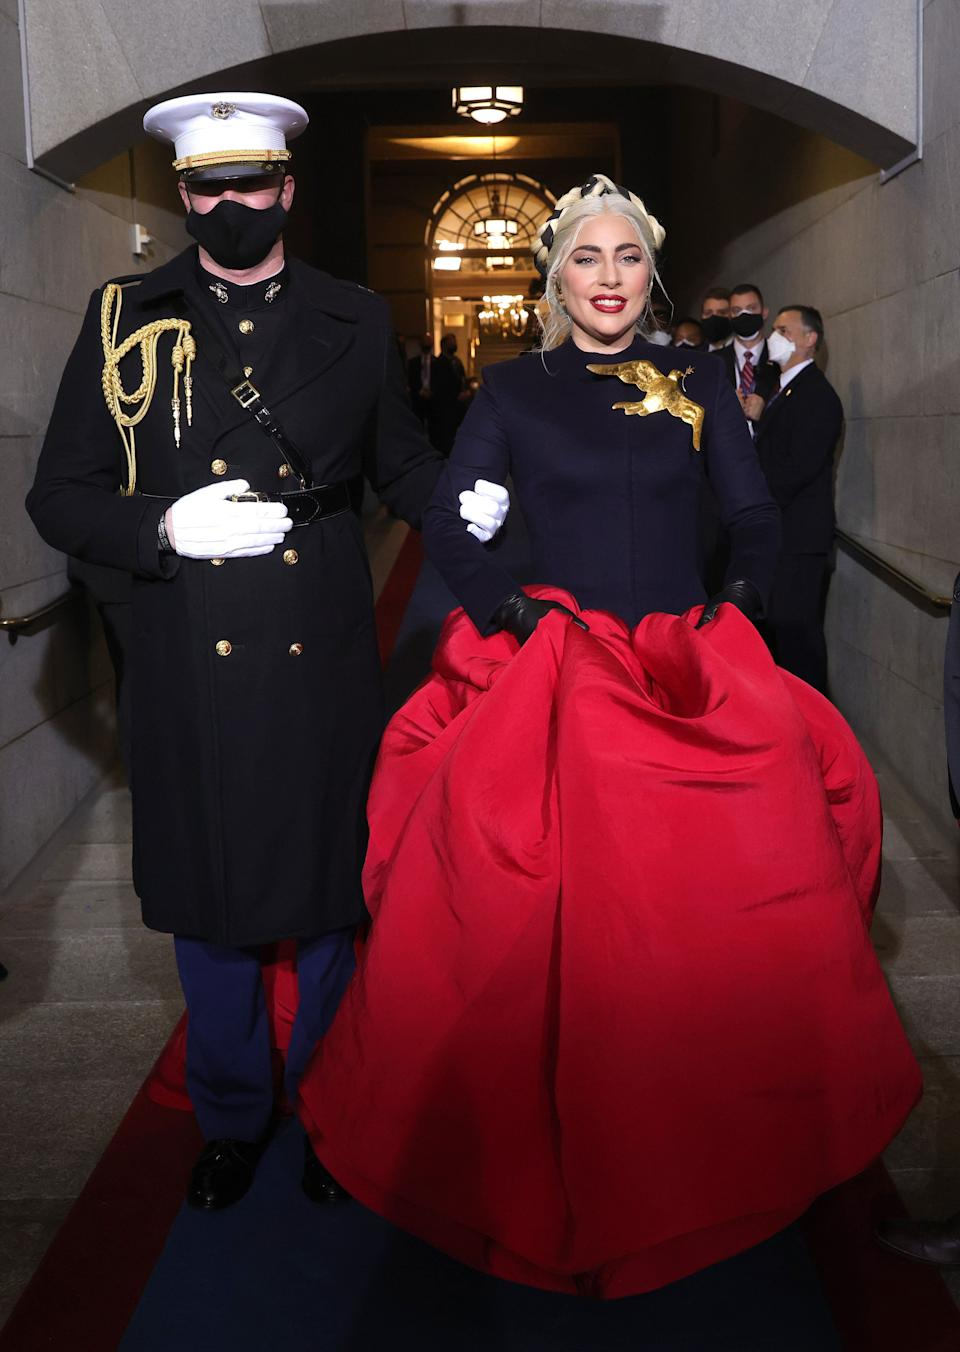 Lady Gaga enters the stage outside the US Capitol building (Photo: Win McNamee via Getty Images)